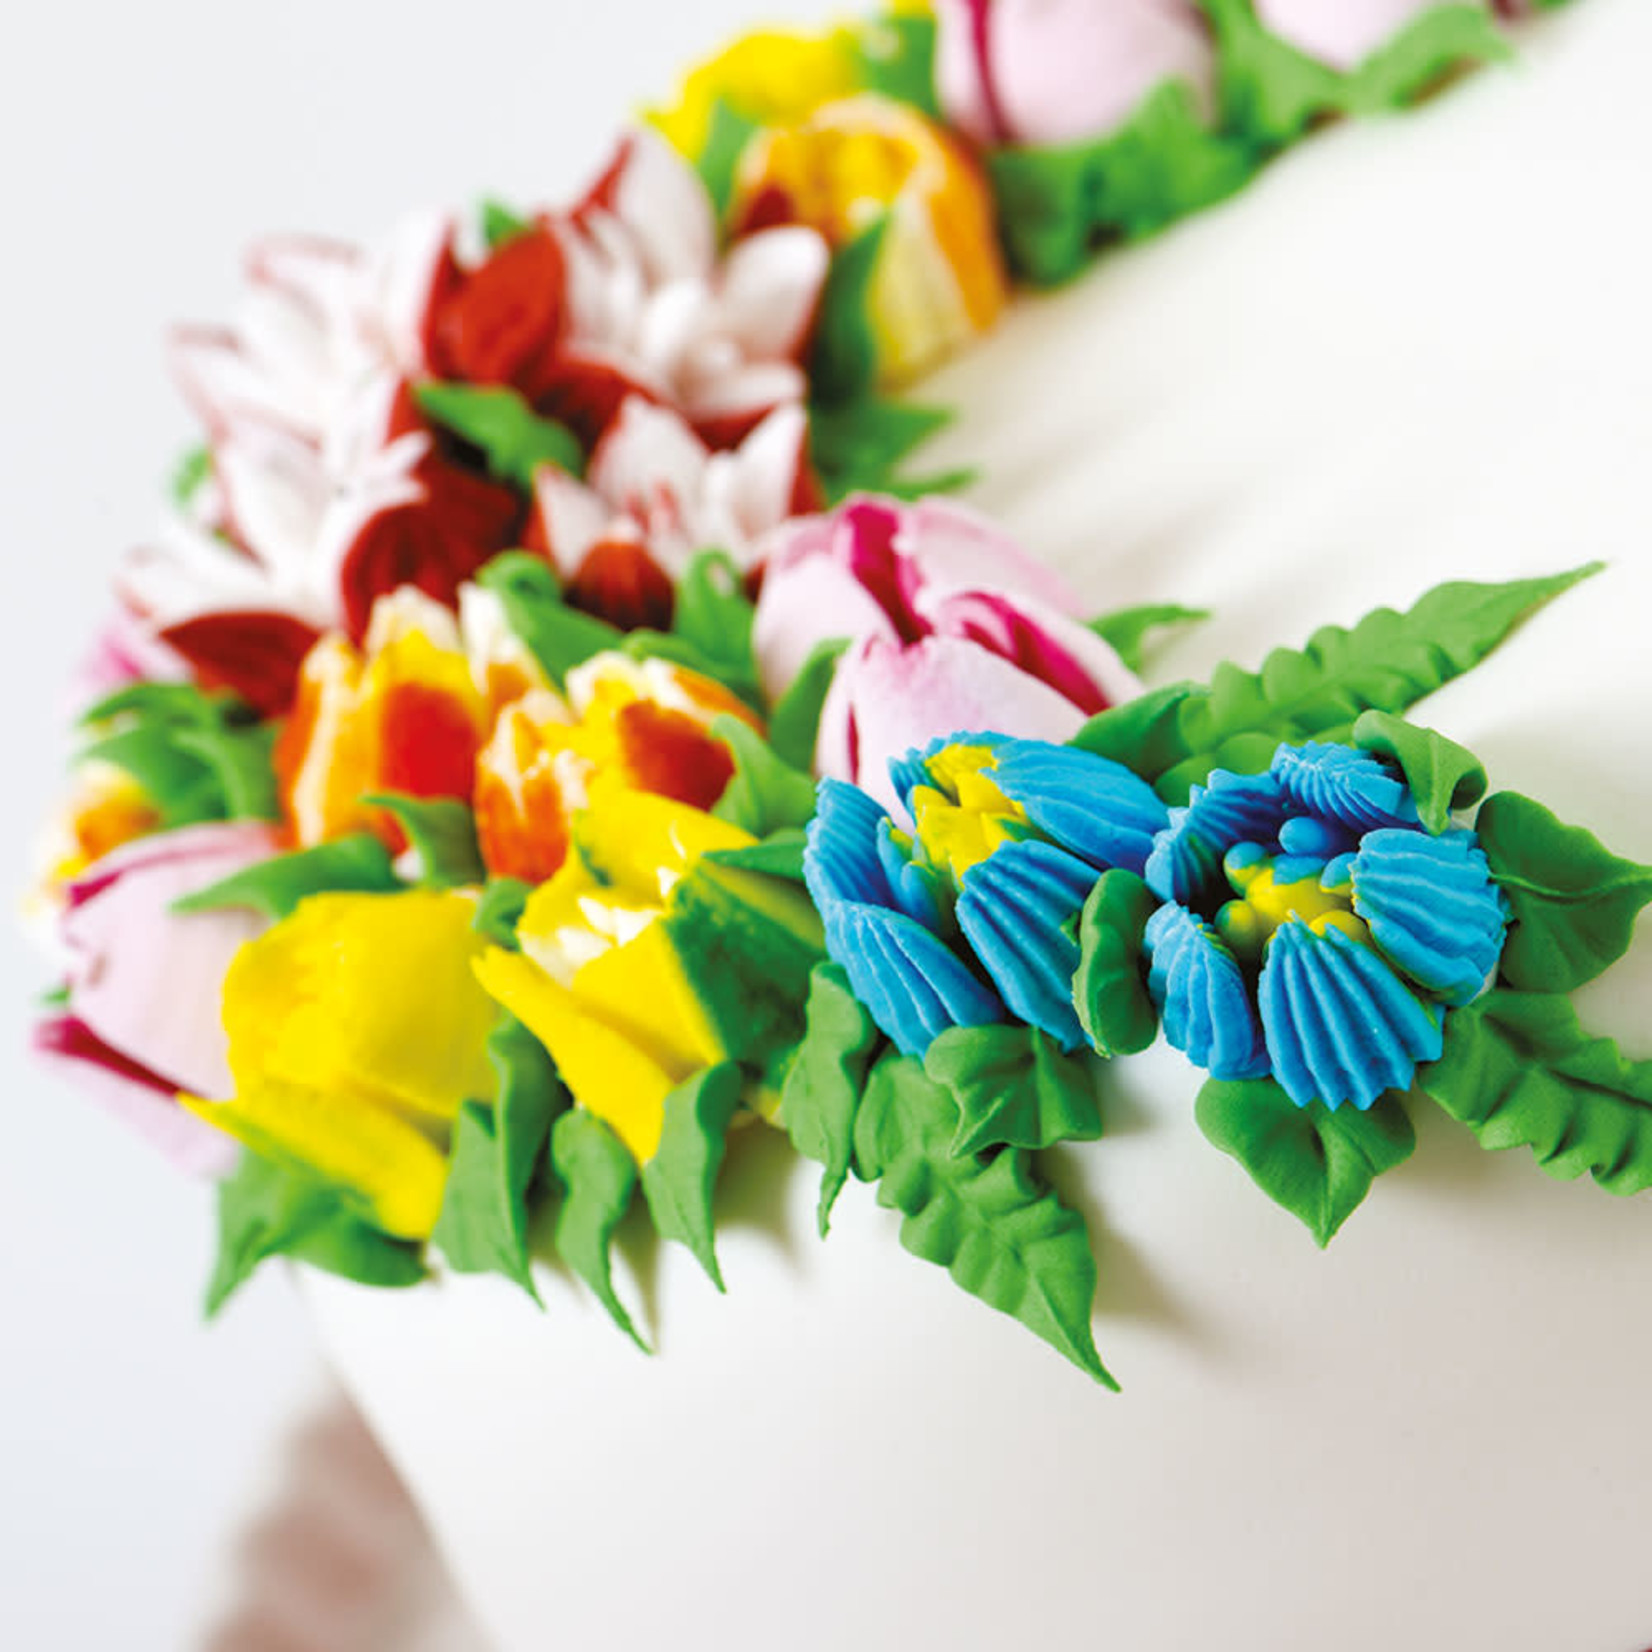 Decora Royal icing extra wit 400g  /6